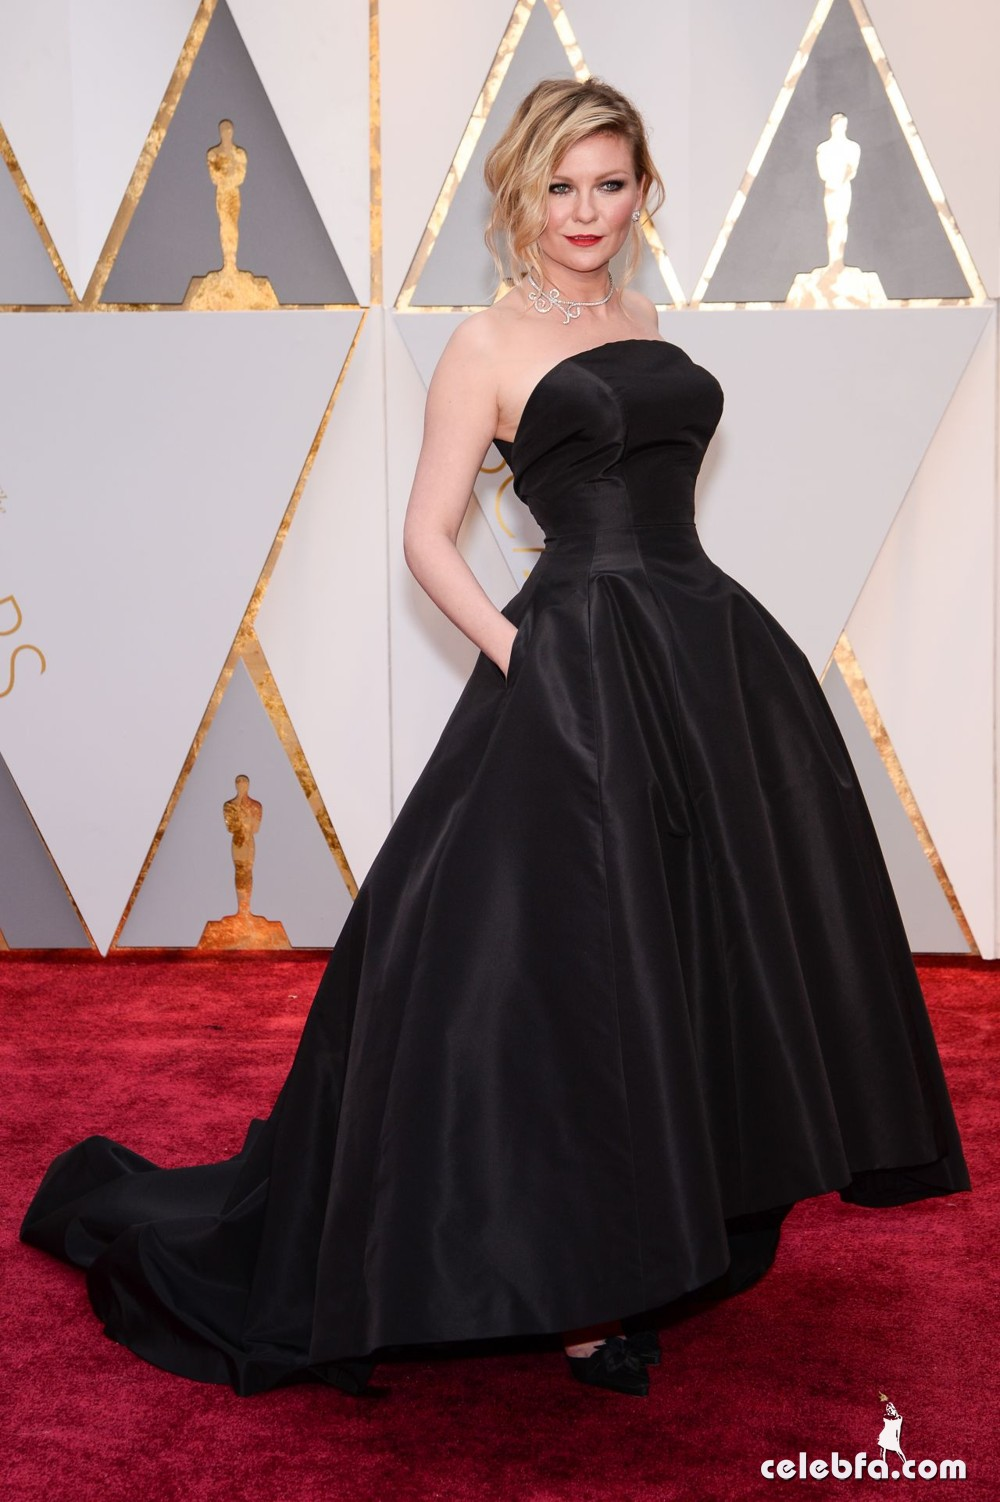 kirsten-dunst-oscars-2017-red-carpet-3